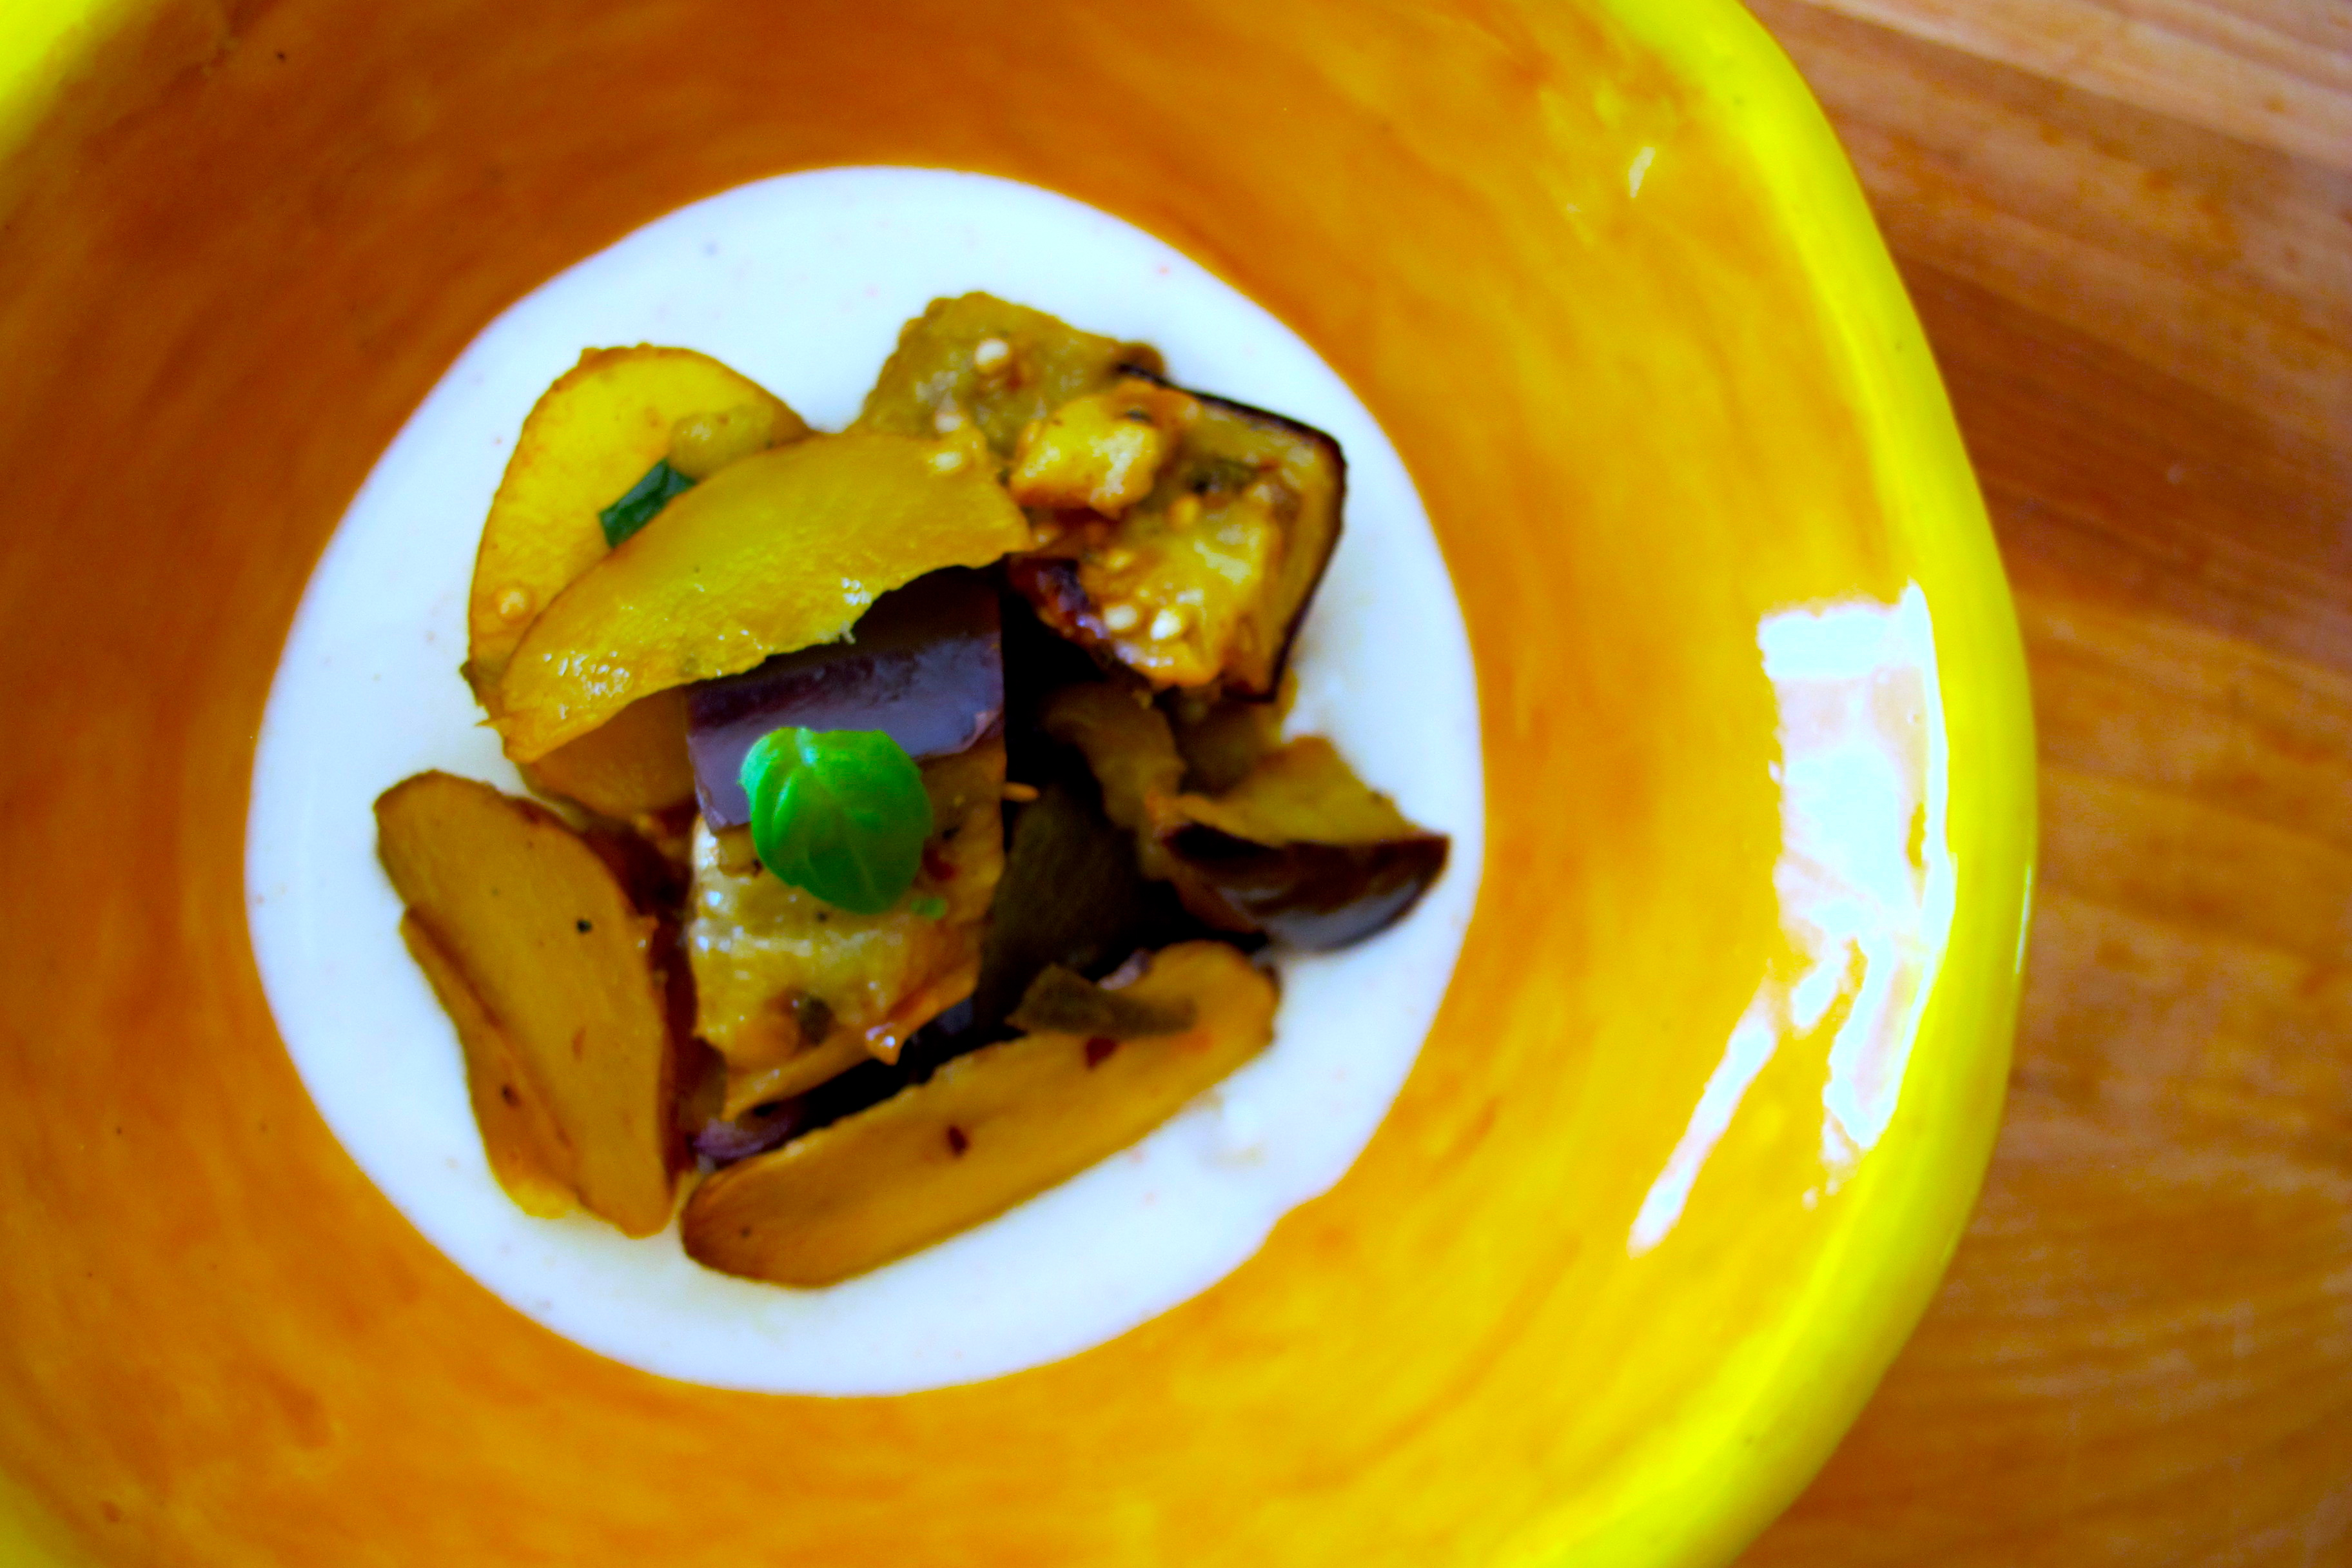 ... Food: Sunchoke and Roasted Eggplant Salad with Buttermilk Dressing